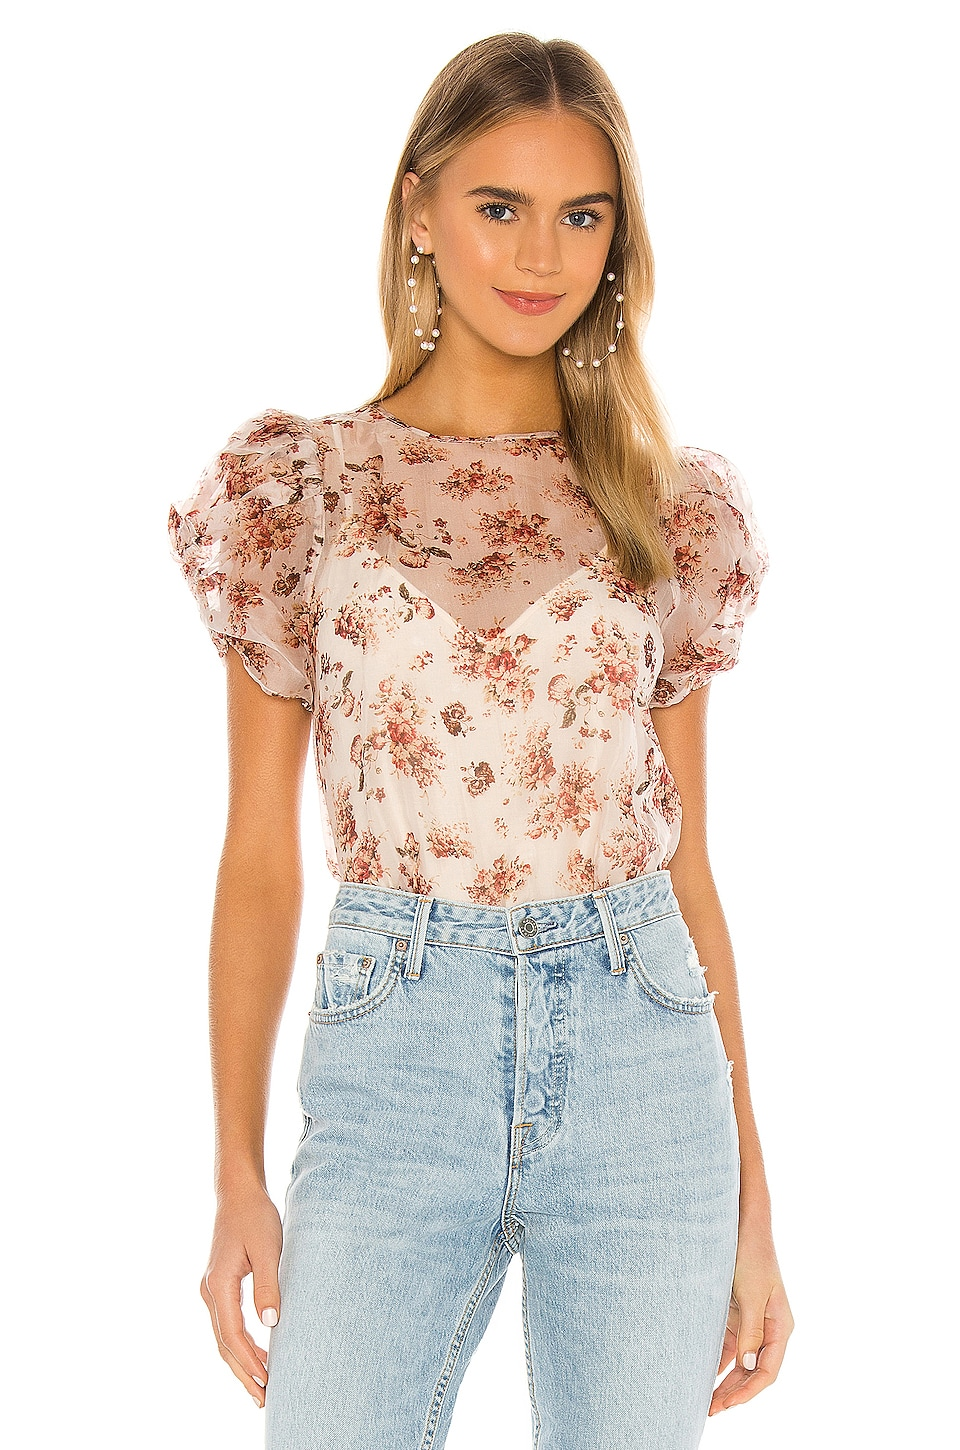 CAMI NYC The Louisa Blouse in Vintage Flora